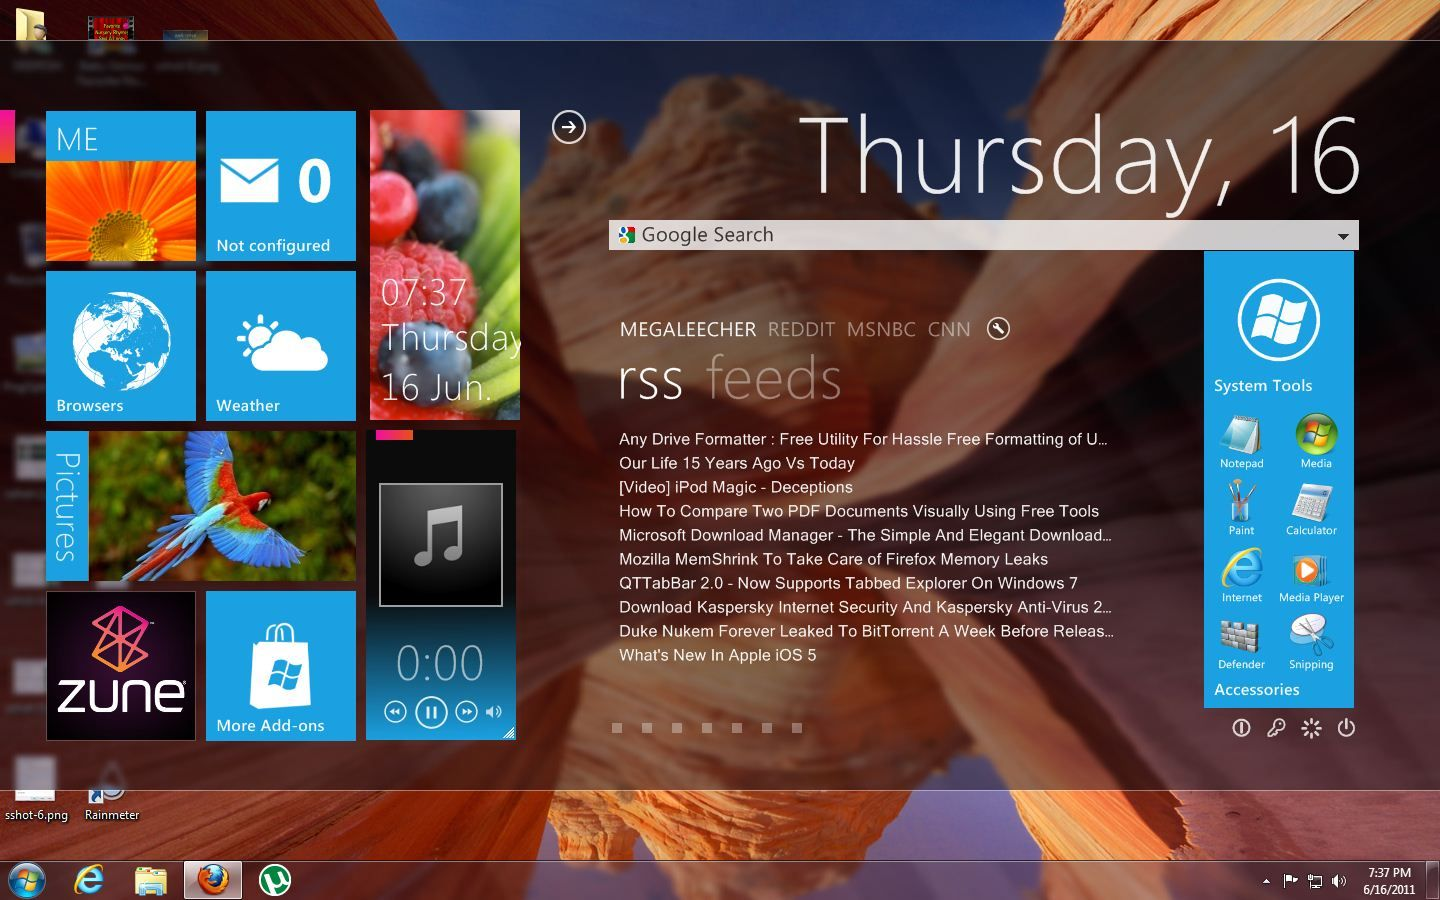 Google themes windows 8 - 18 Best Images About Windows 8 Ui On Pinterest Google Https Android And Lockers